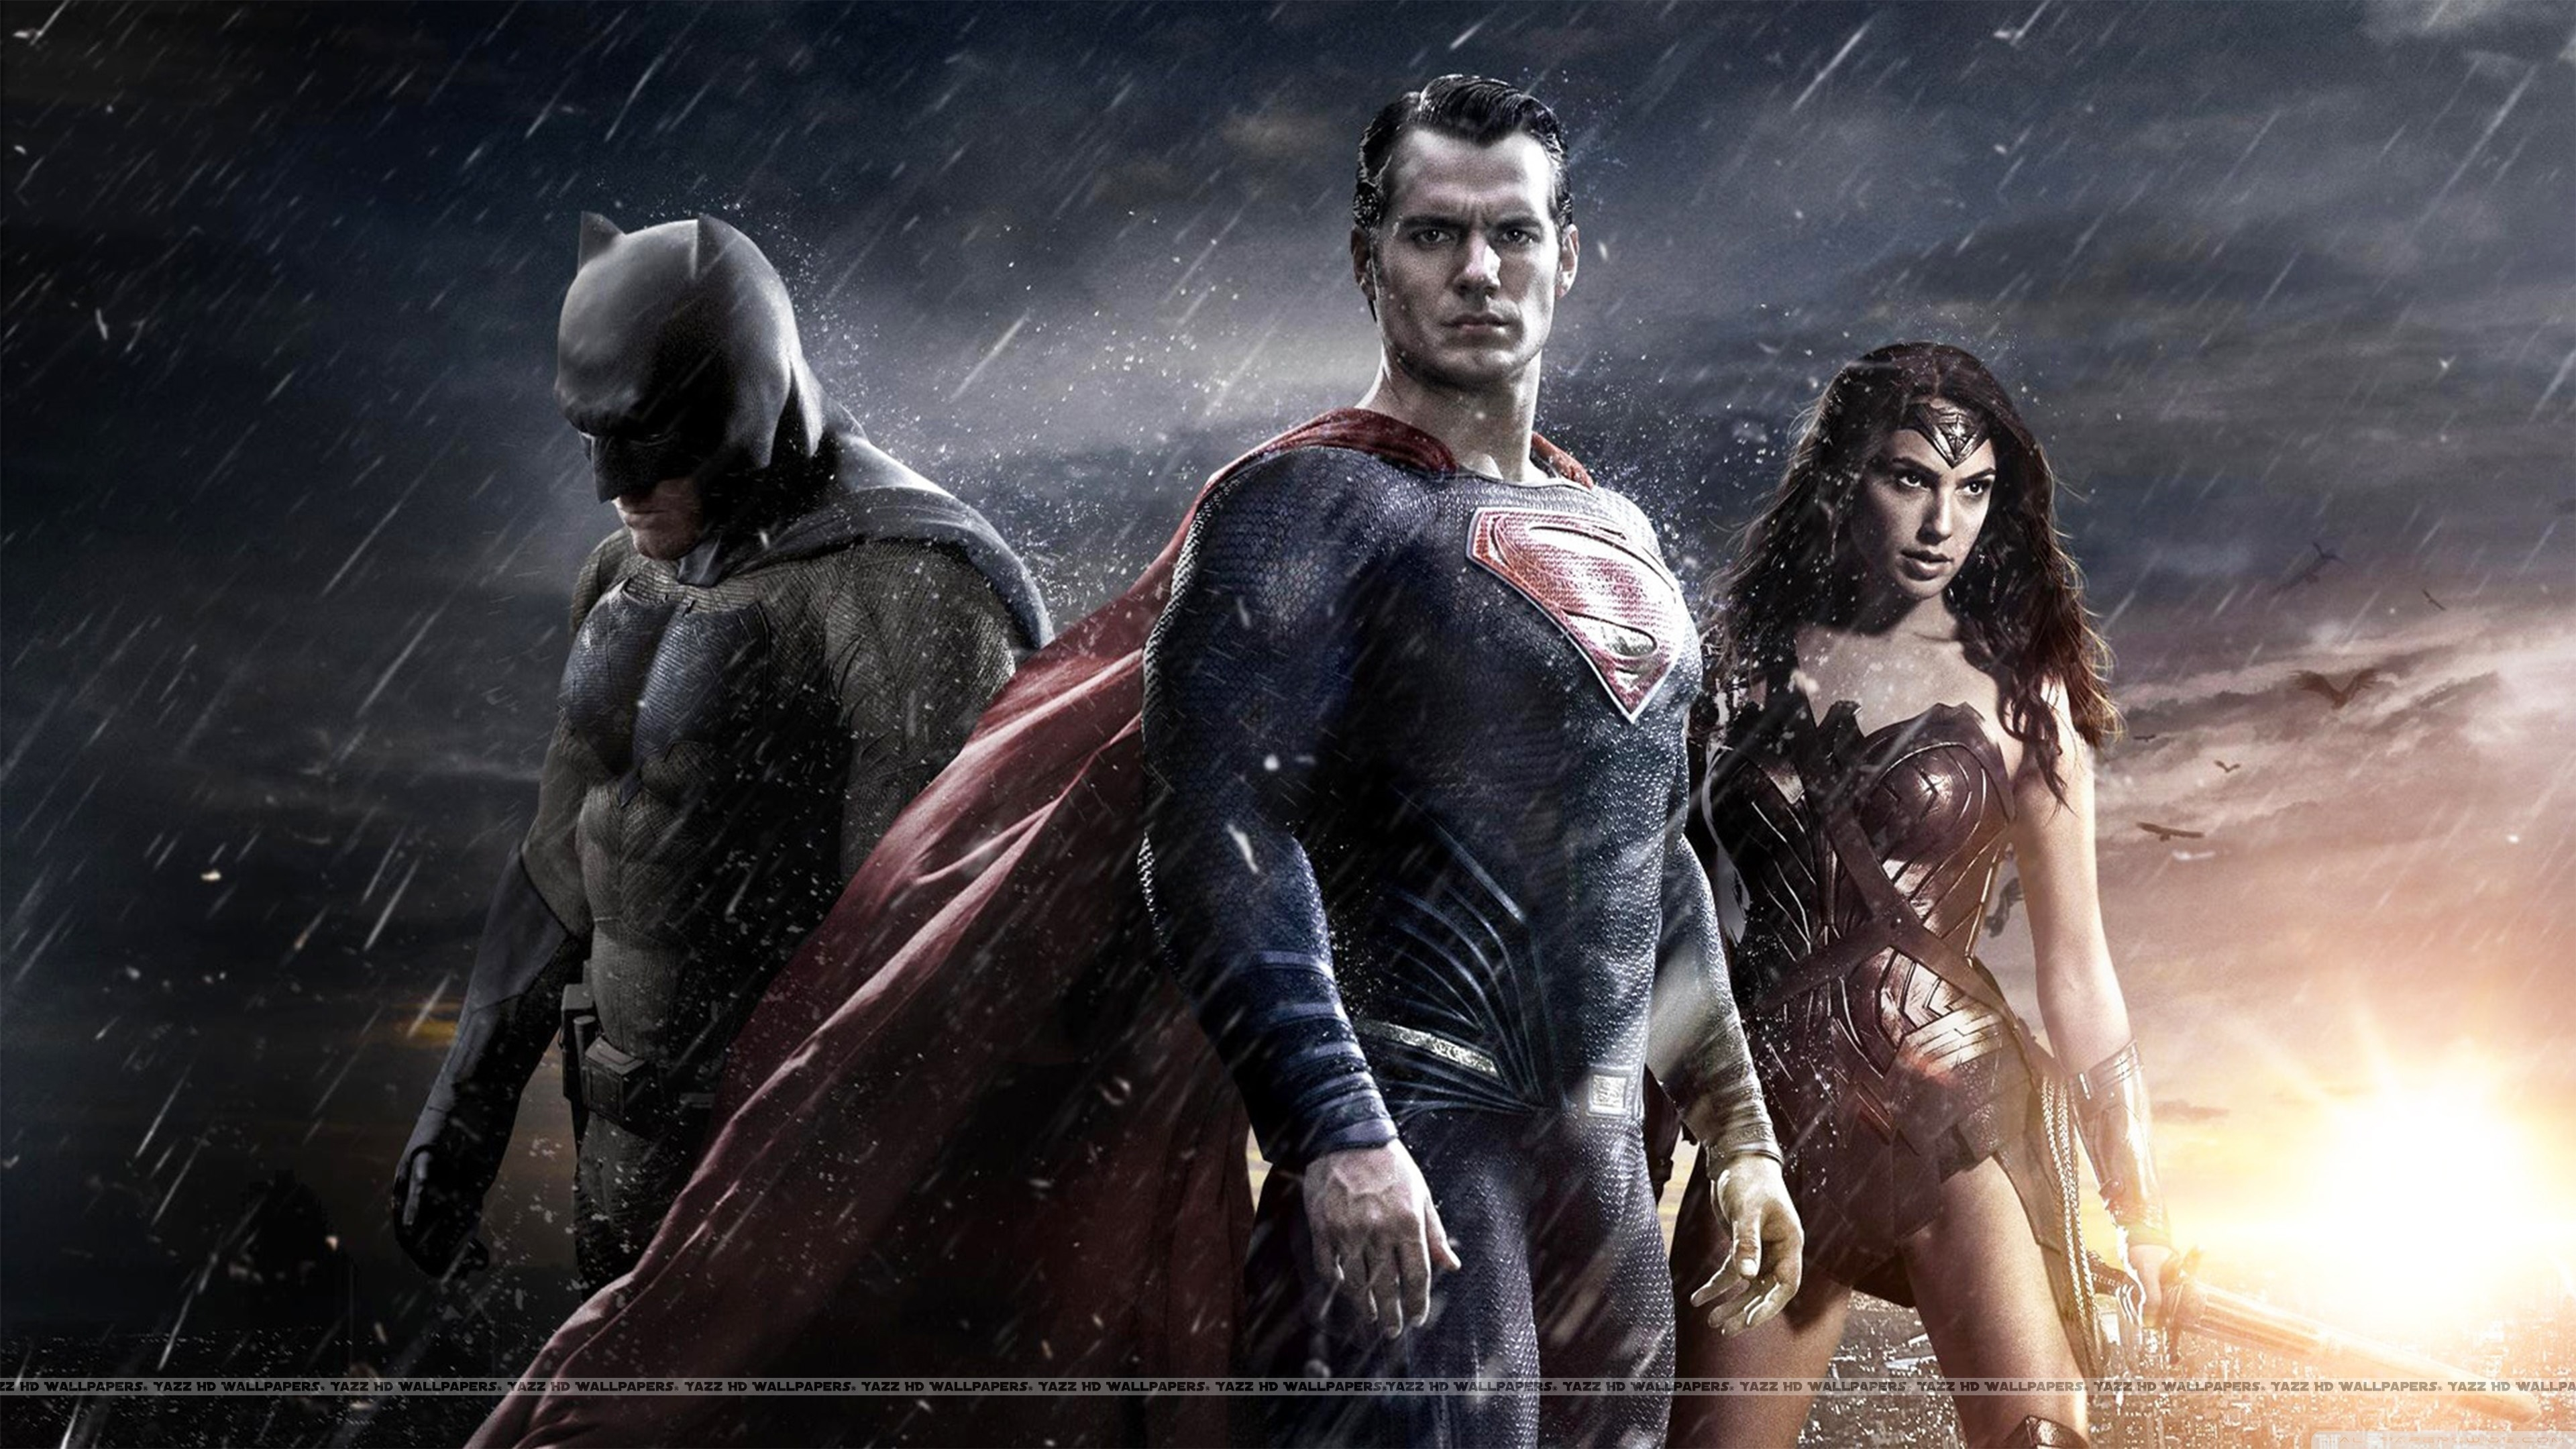 10 Best Wallpapers Of Batman Vs Superman FULL HD 1920×1080 For PC Background